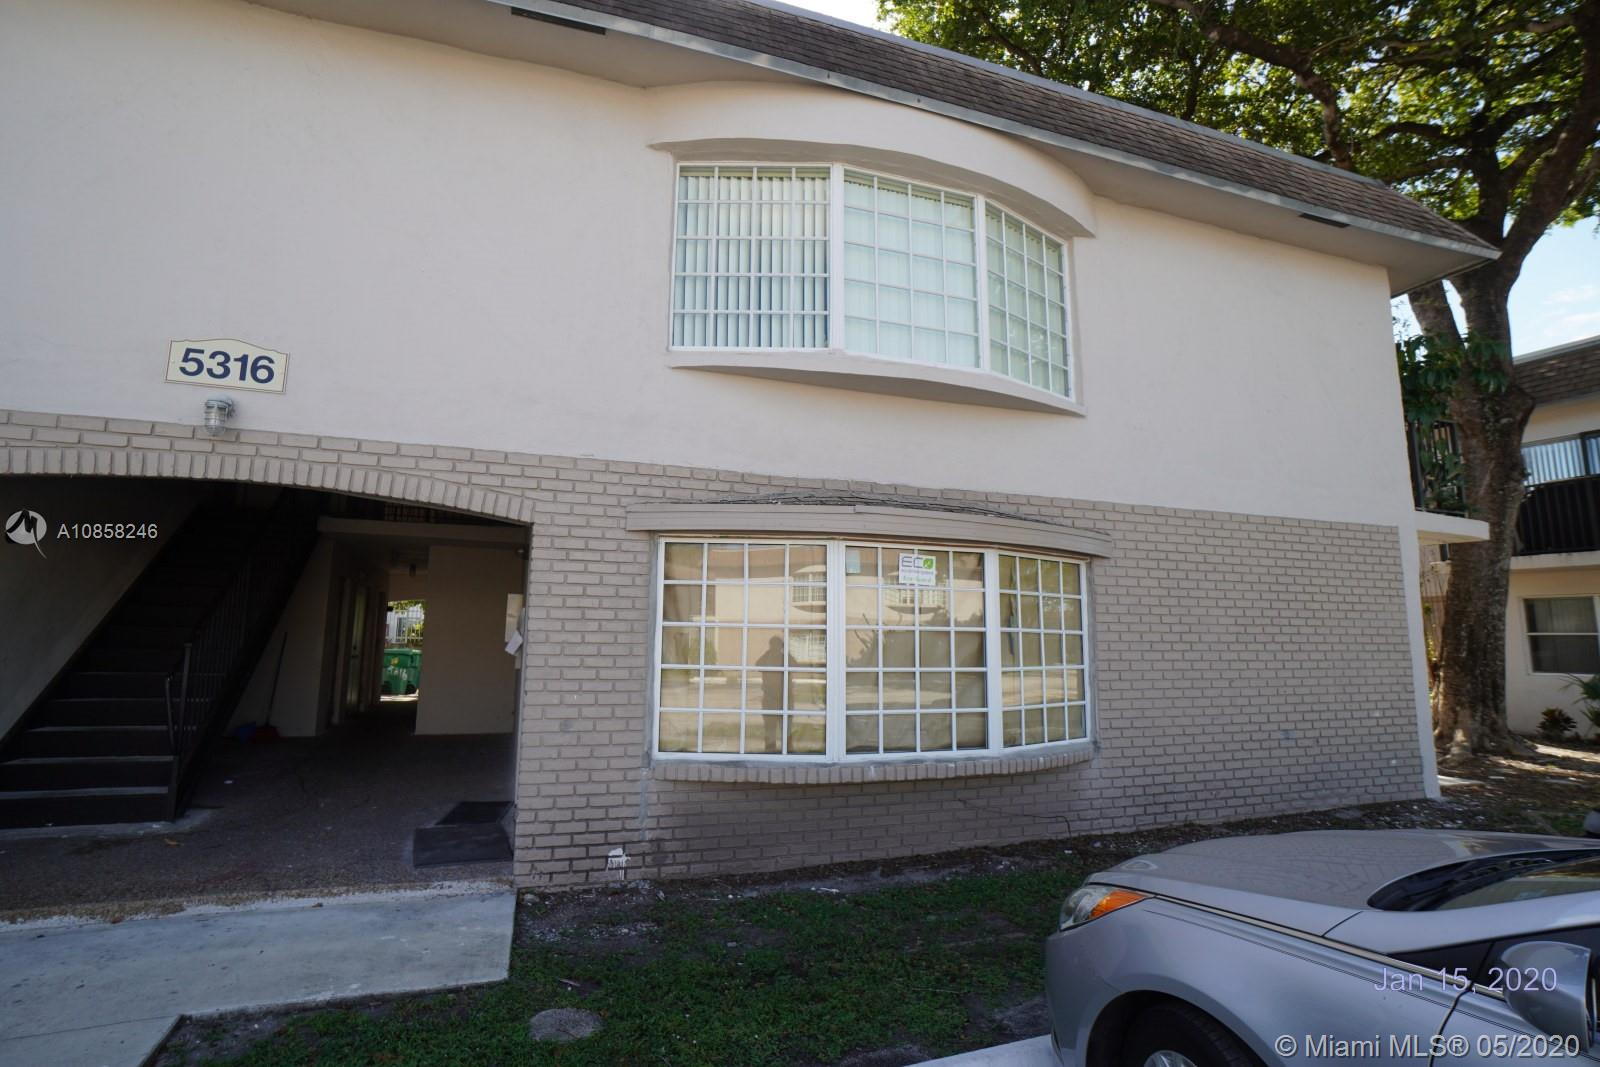 Bottom floor 3 bed/2 bath condo located in a 2 story building with only 4 units per building. Located in an all age community and unit can be rented after purchase without a wait period. Unit being renovated and will be competed before closing.